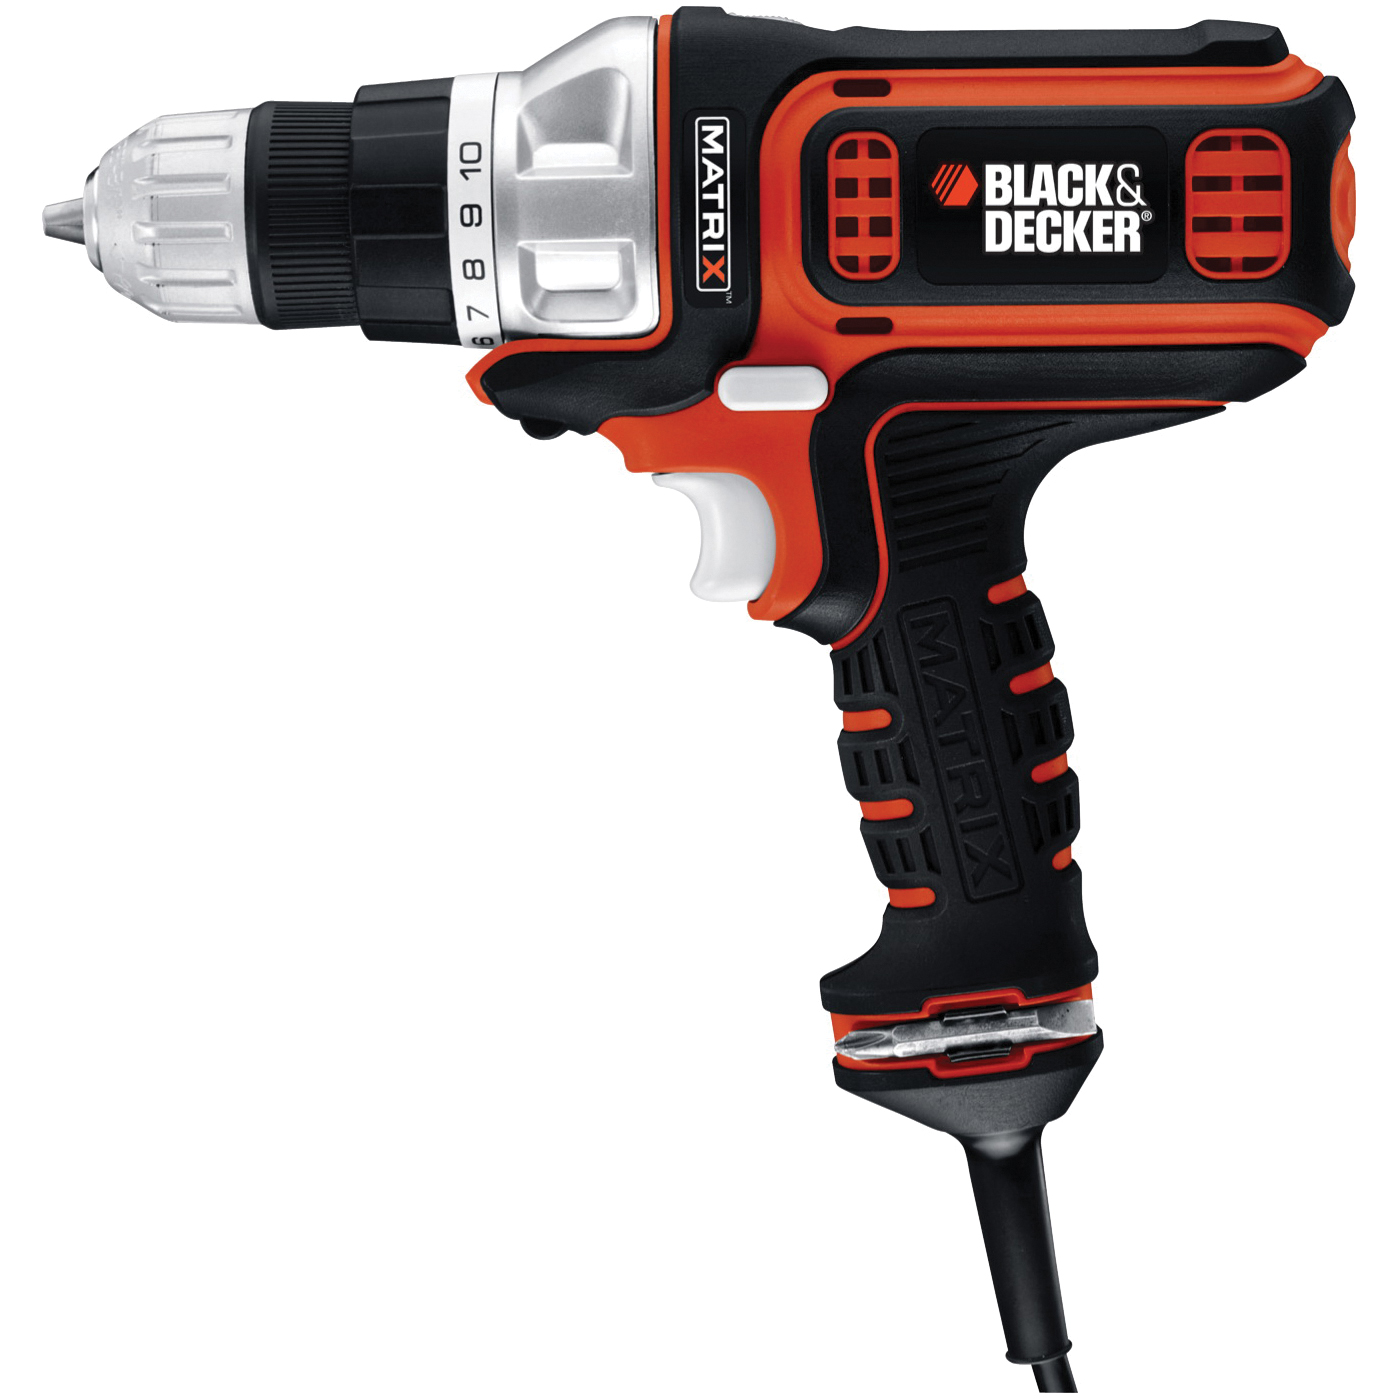 Picture of Black+Decker BDEDMT Electric Drill, 3/8 in Chuck, Keyless Chuck